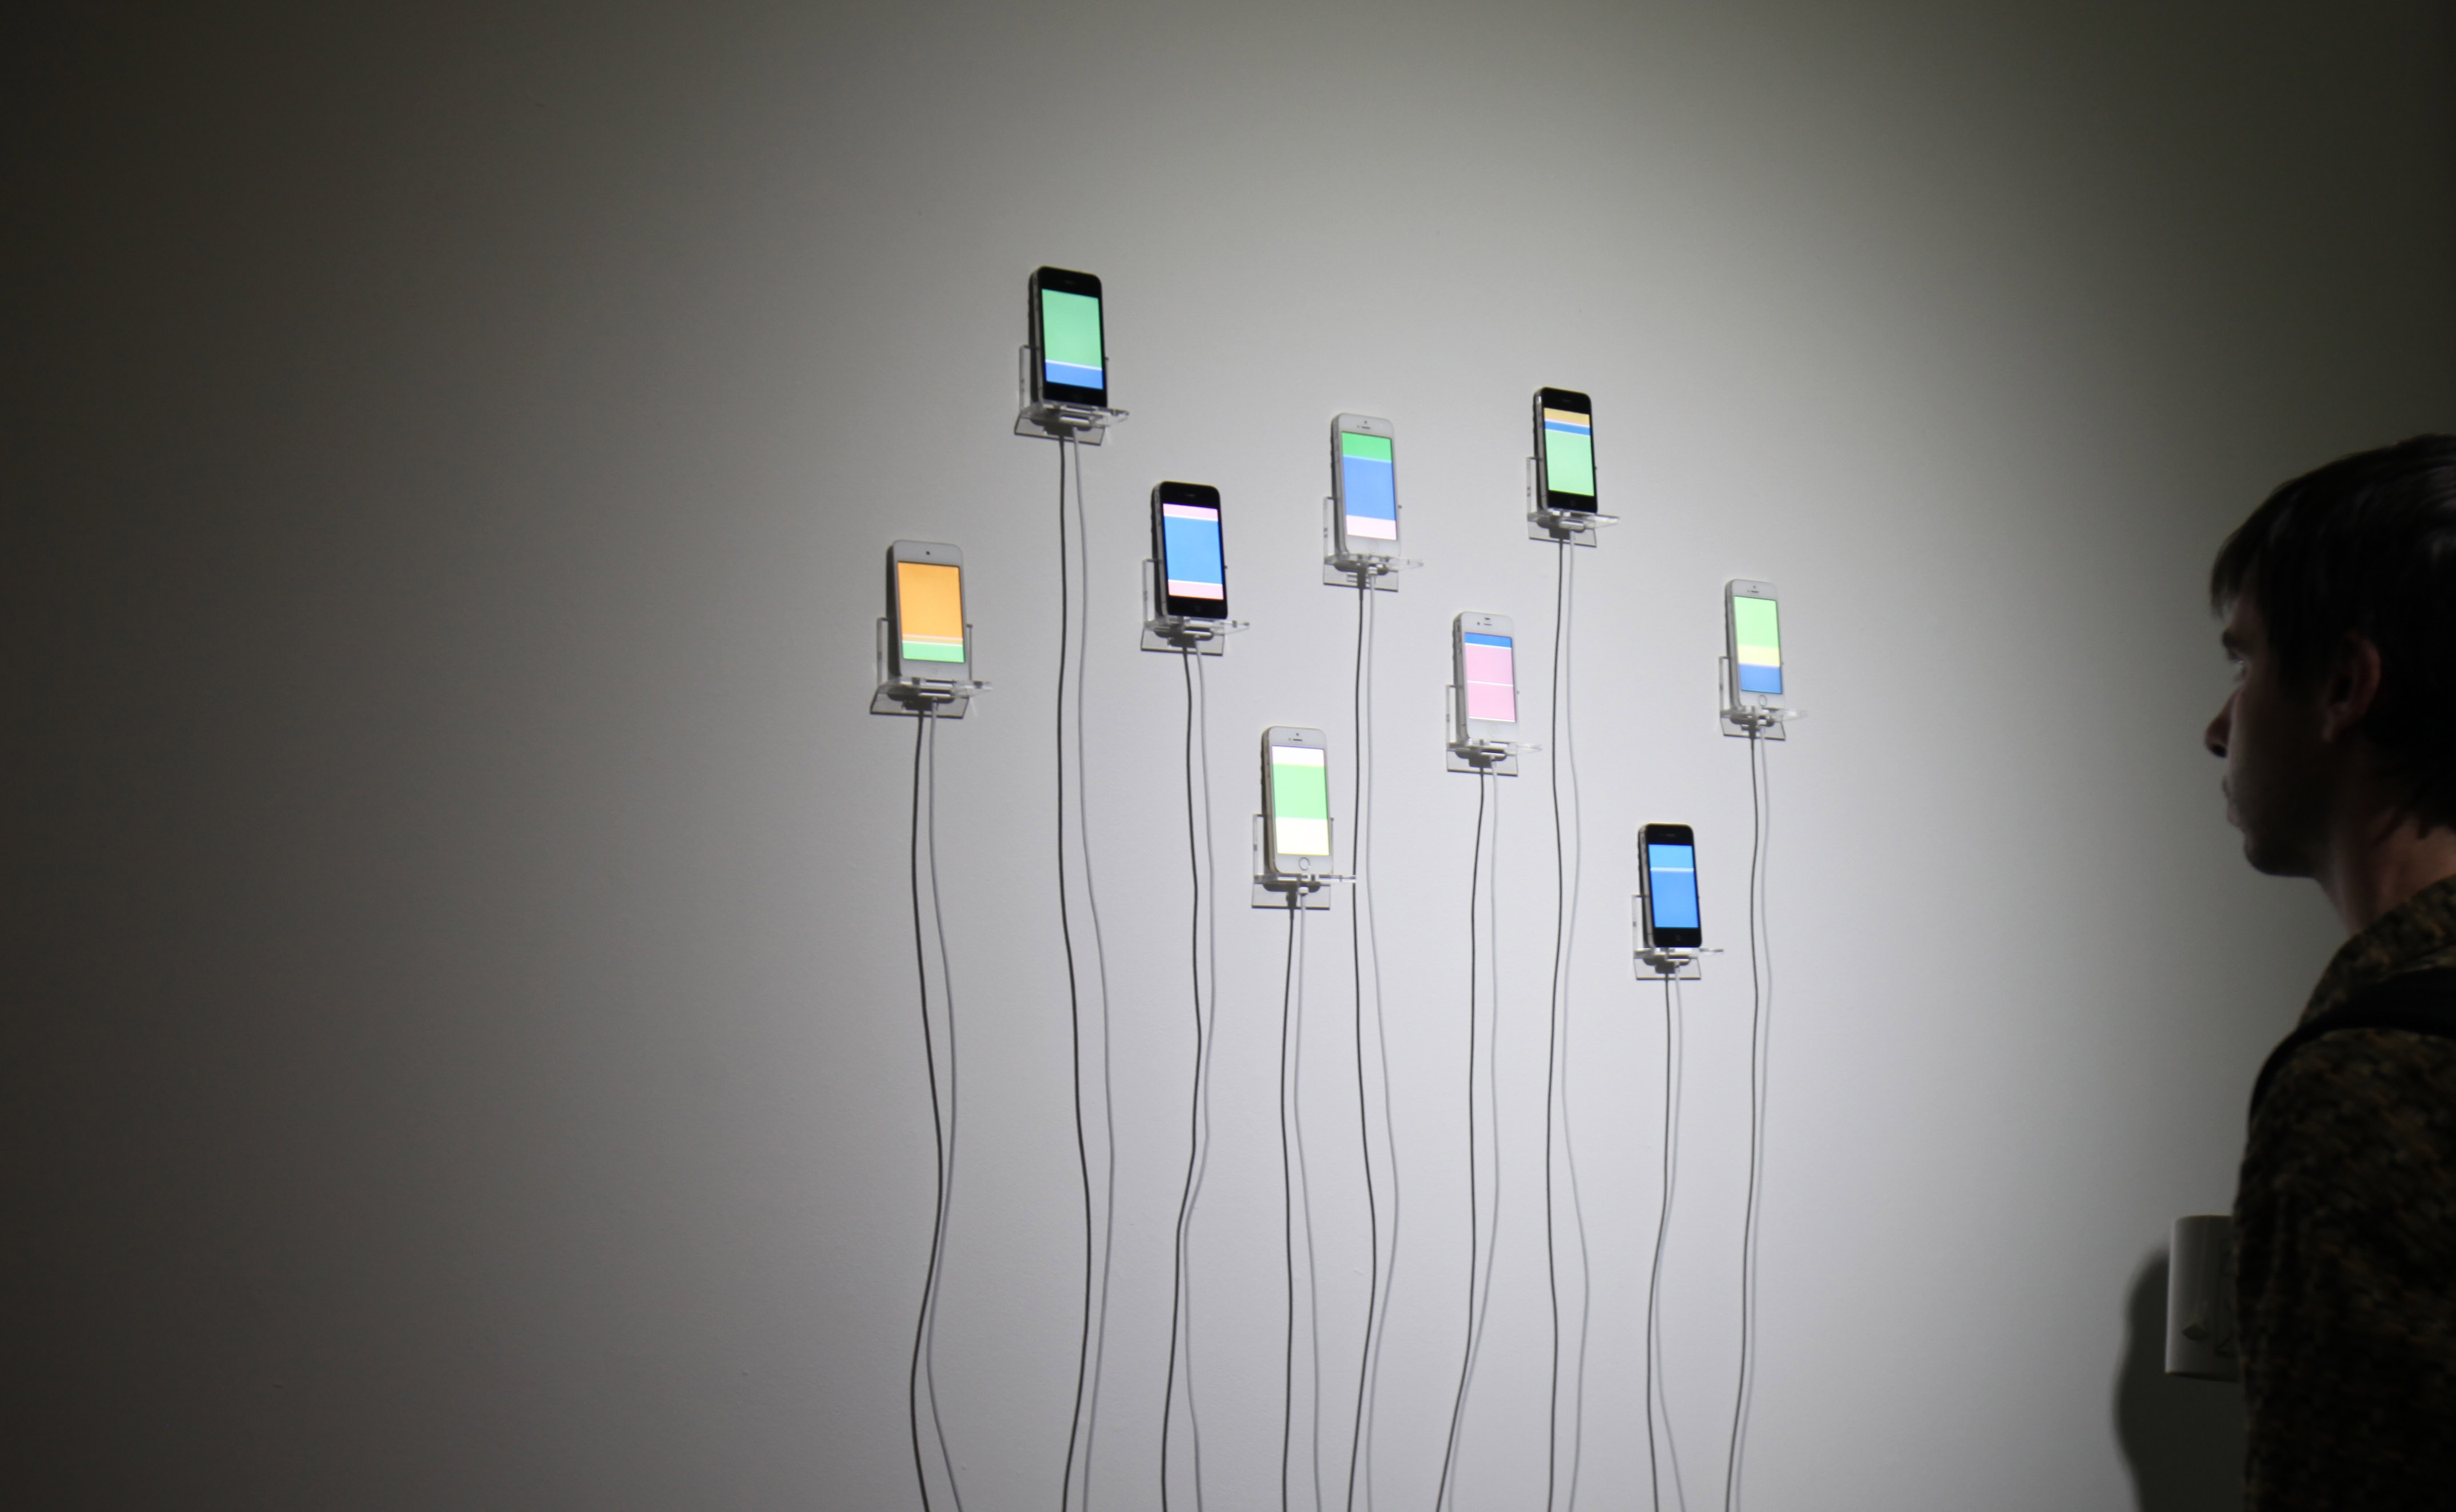 Man observes the iPhones in Infinite Scroll mounted on the wall, each scrolling bright colors